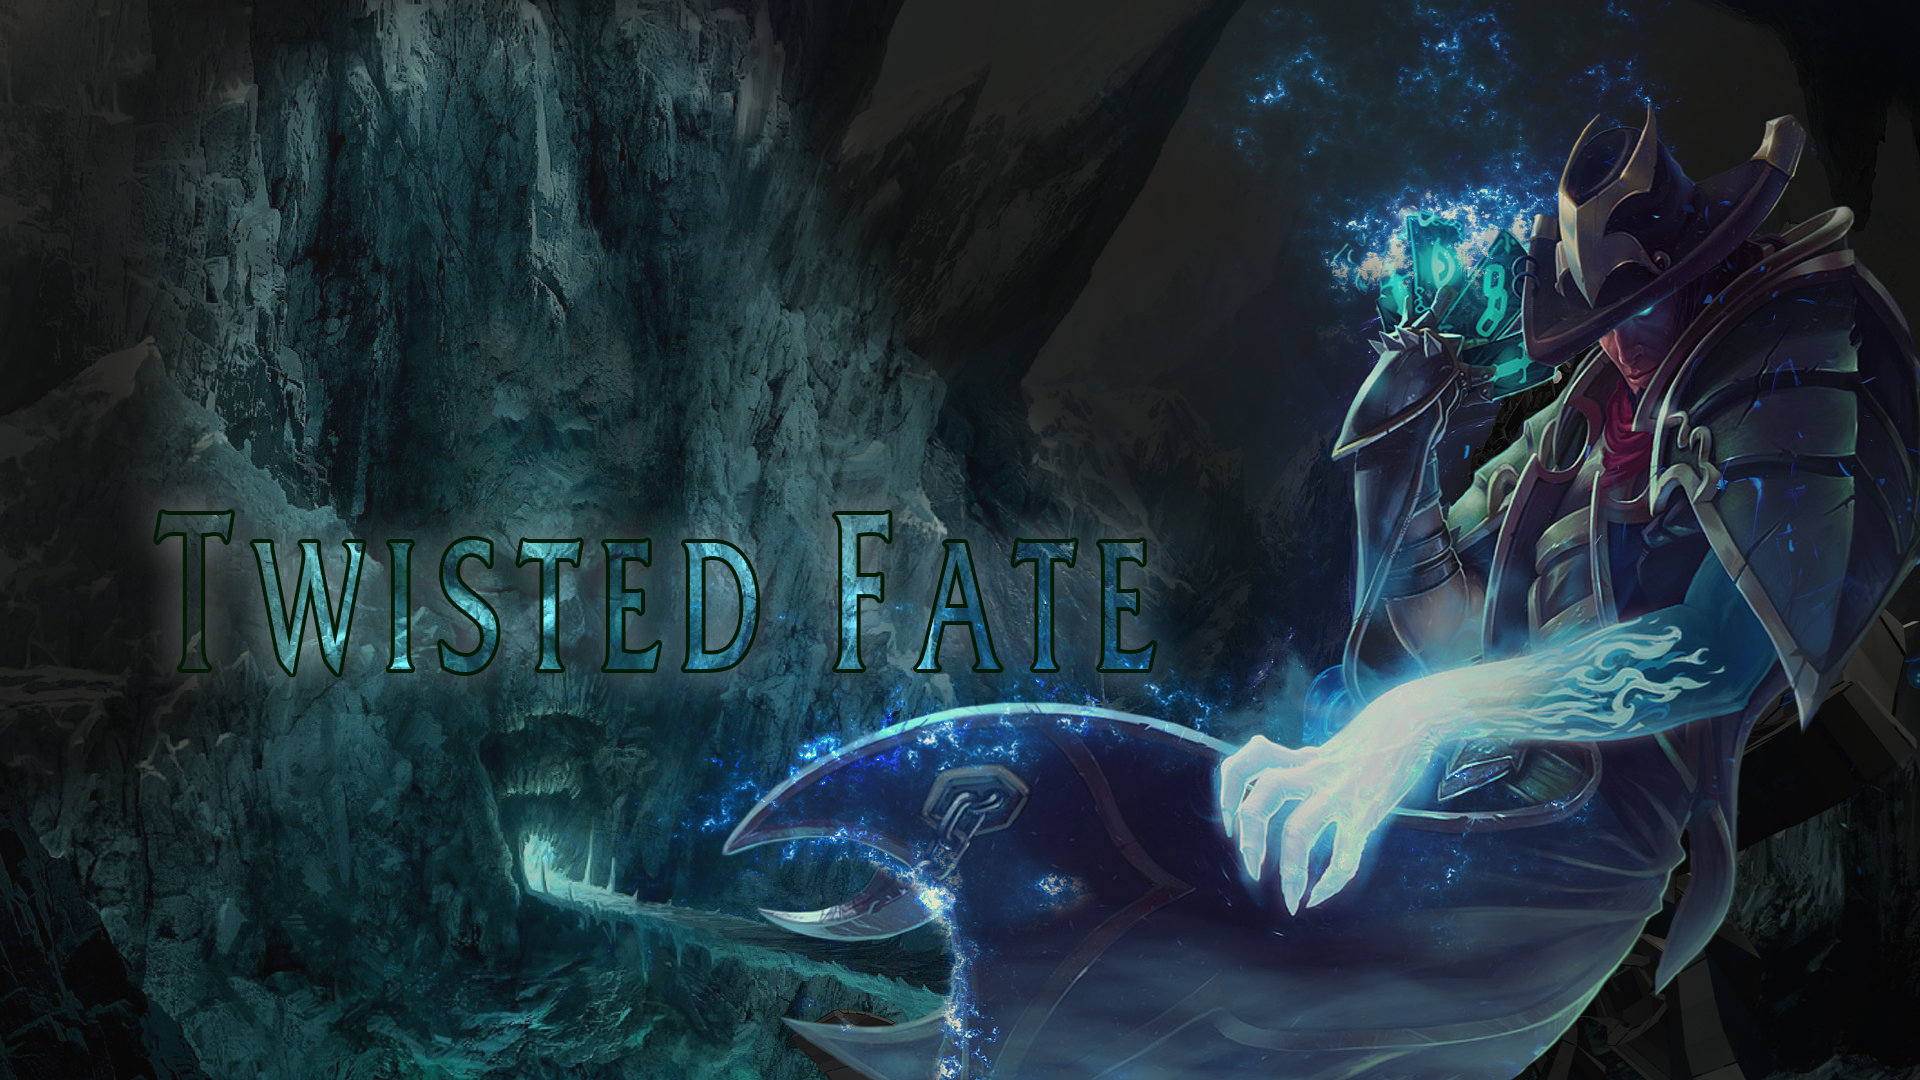 Twisted fate wallpaper by ganger design on deviantart twisted fate wallpaper by ganger design voltagebd Gallery